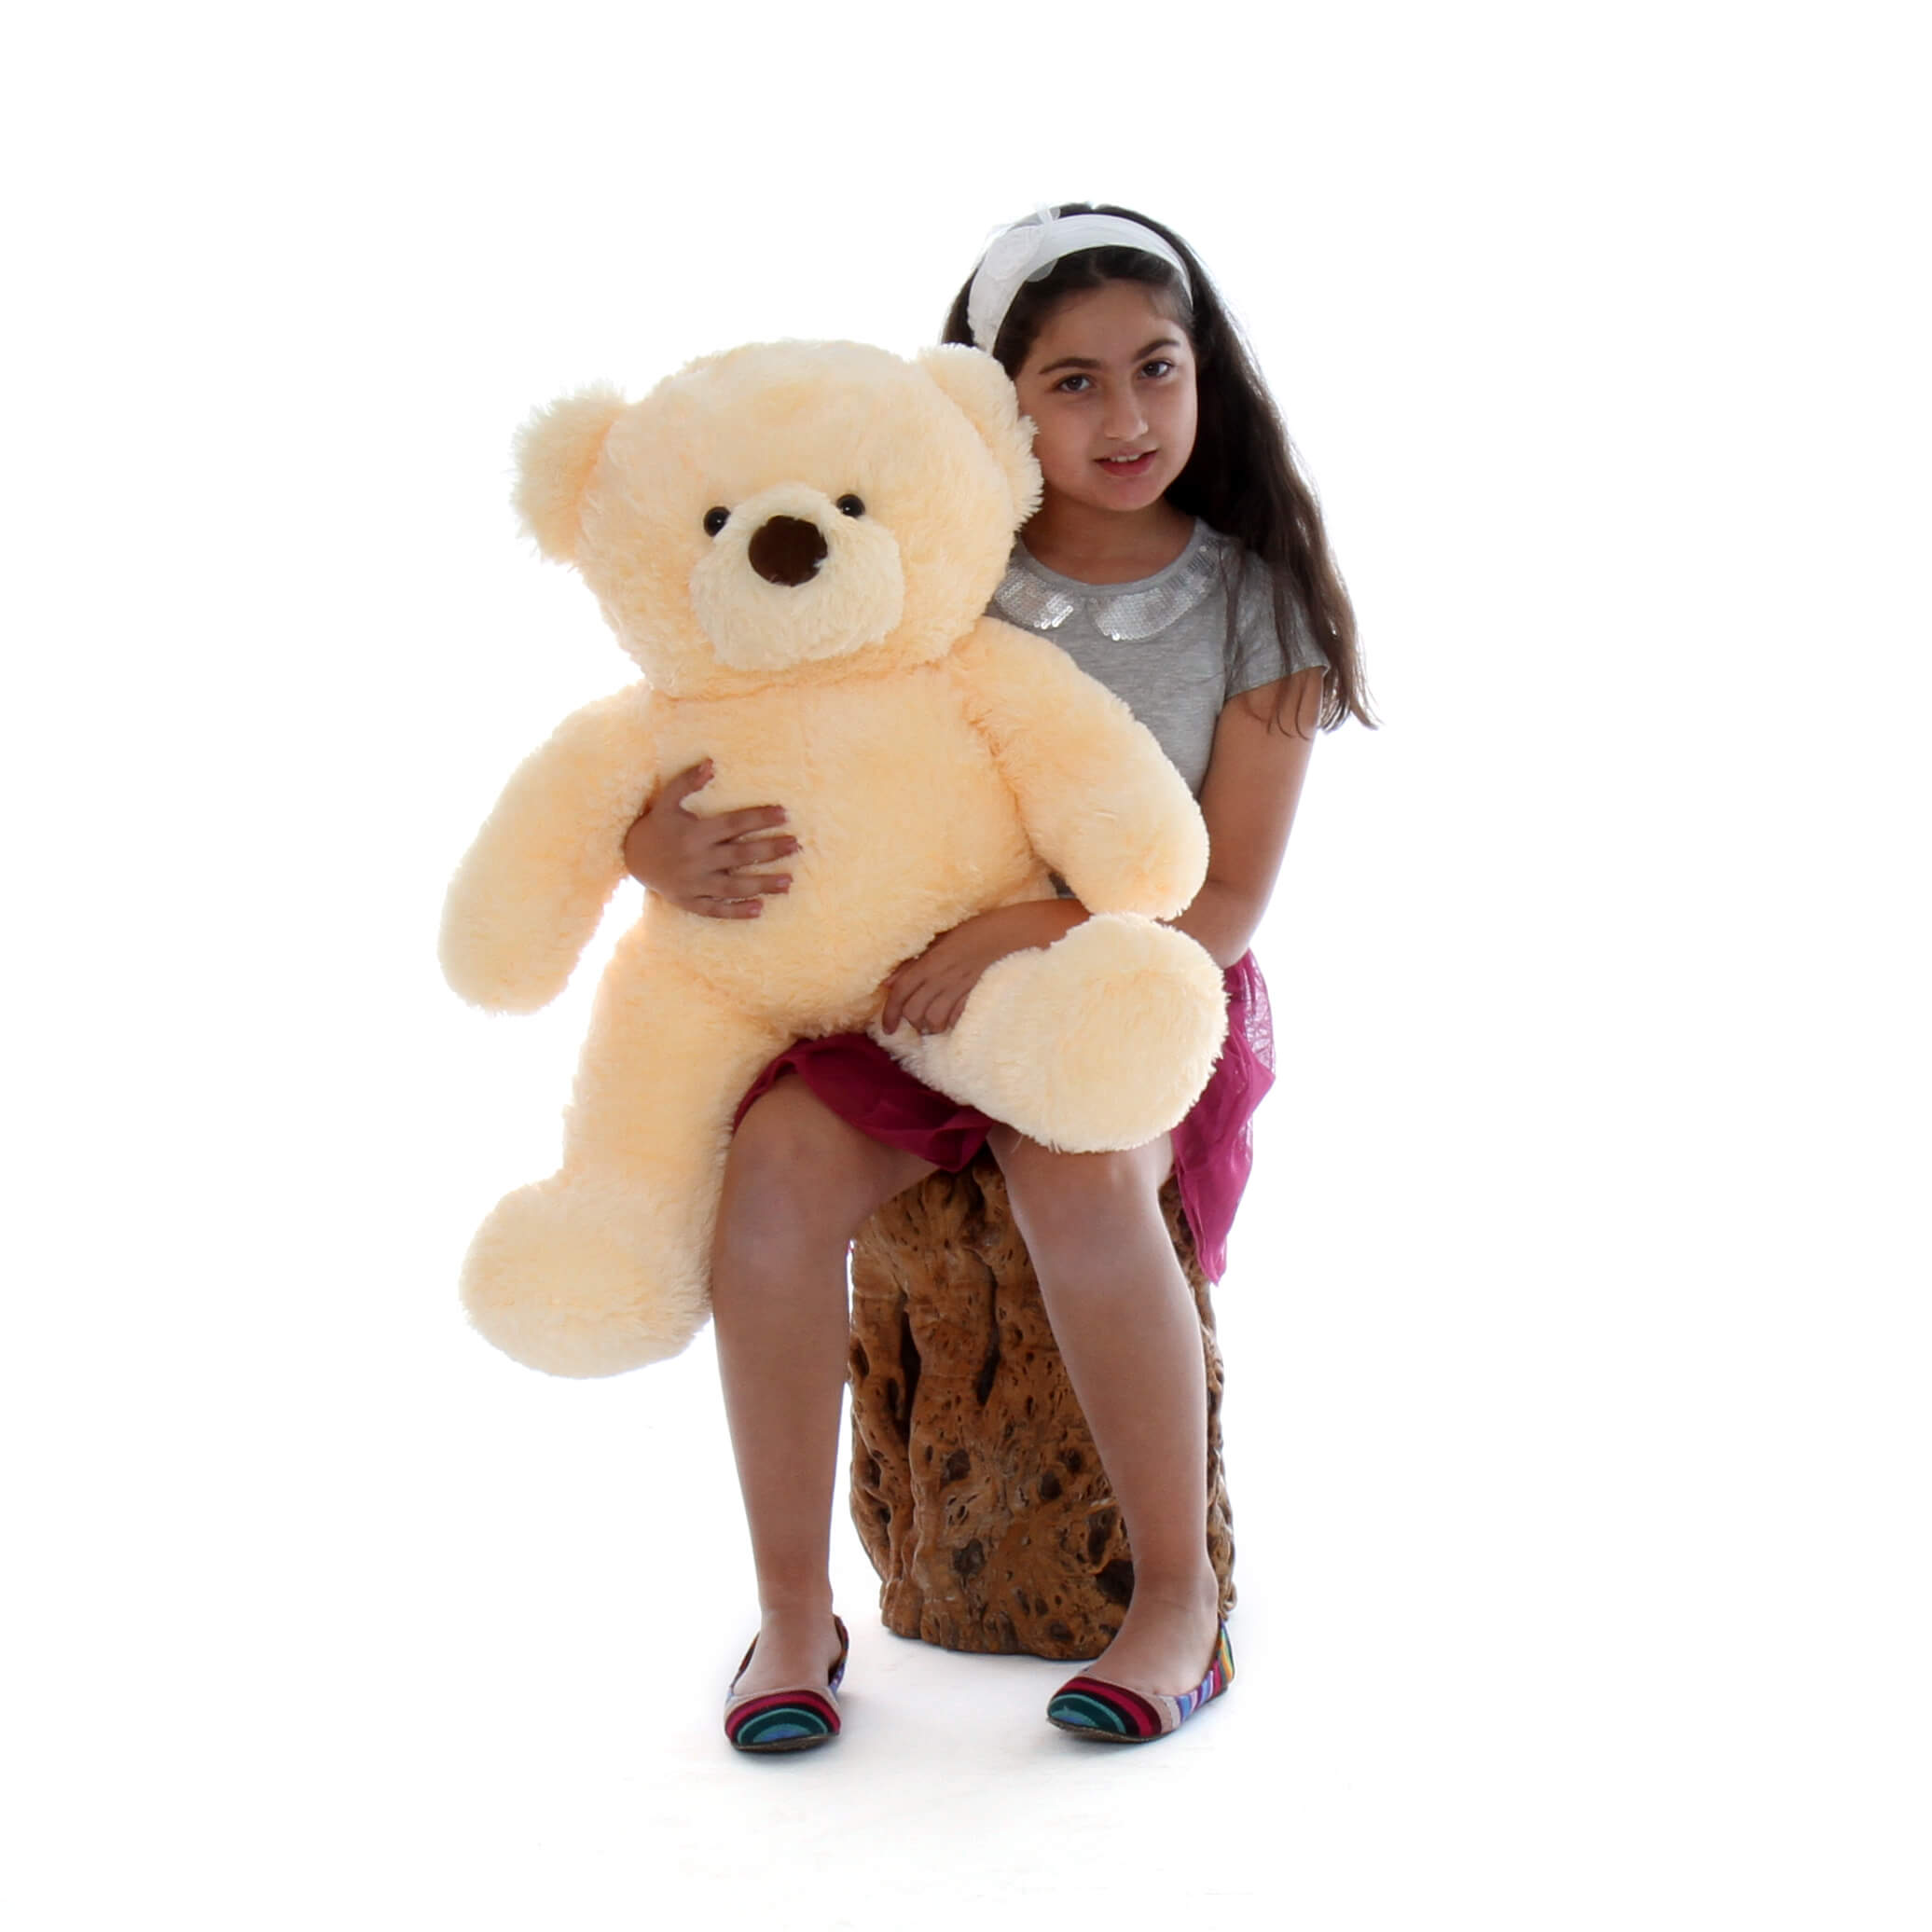 giant-teddy-bear-in-vanilla-smiley-chubs-1.jpg